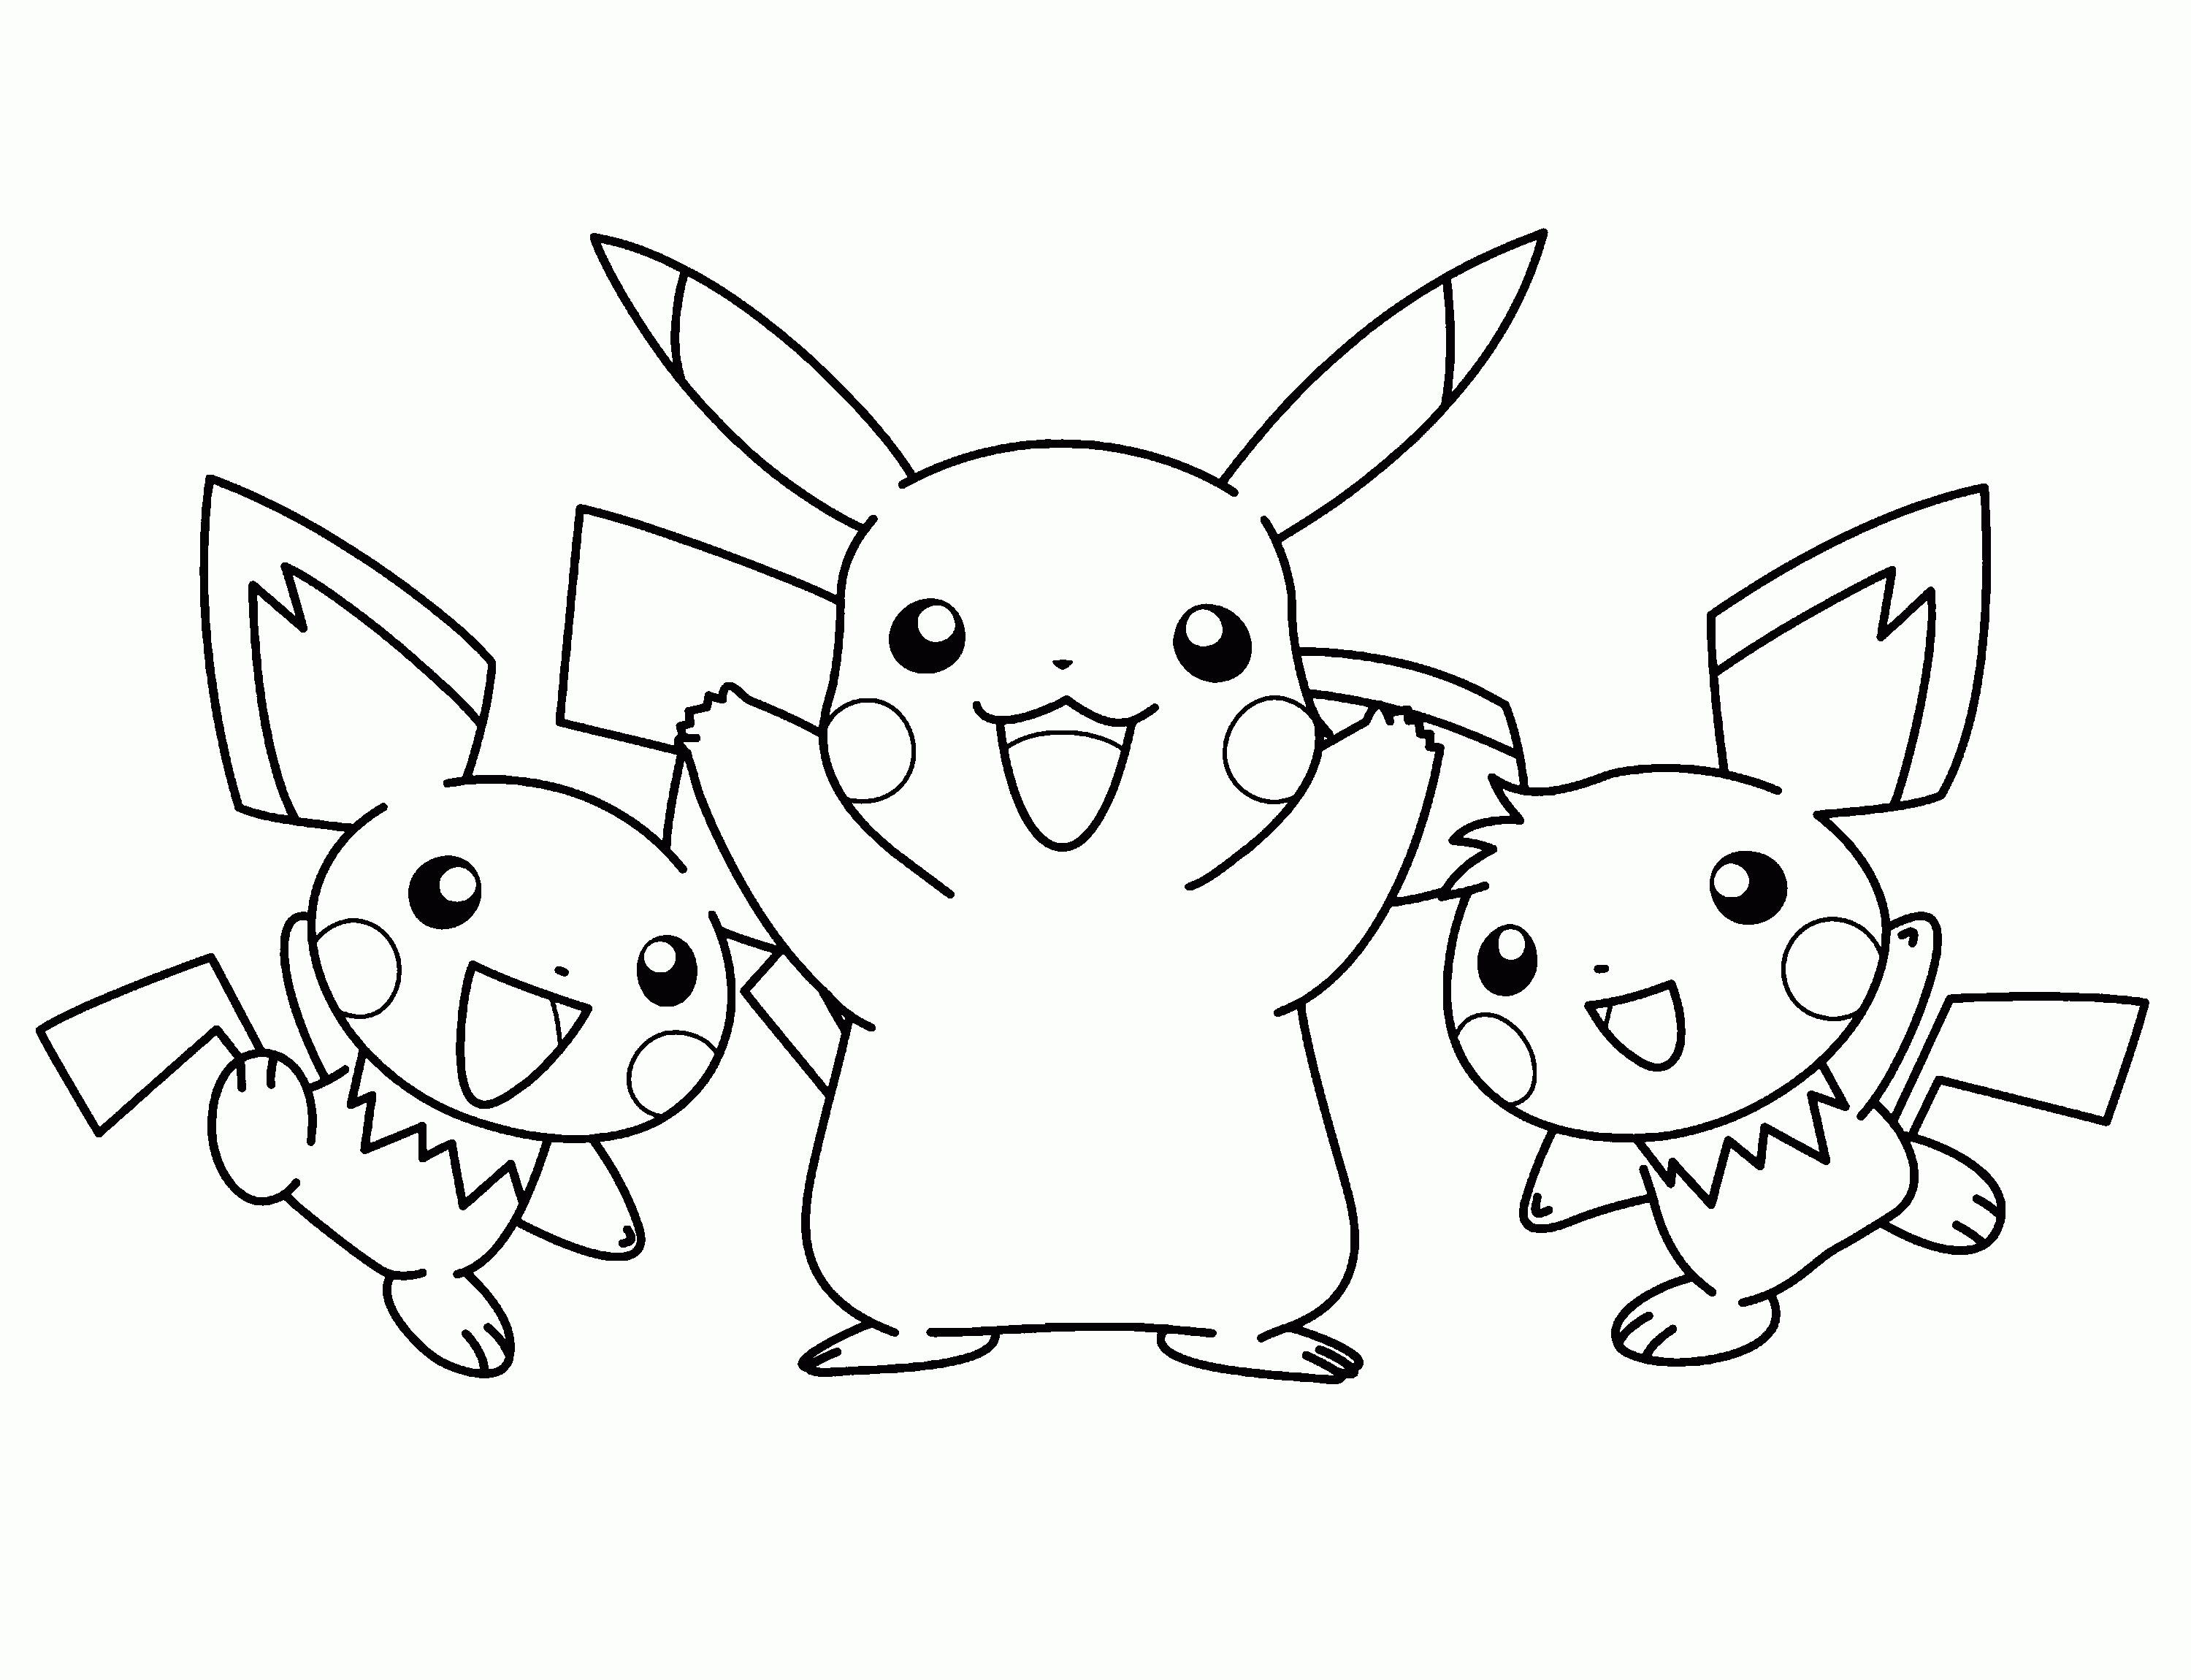 Coloring pages pikachu and friends - Pokemon Coloring Pages Pikachu And Frien